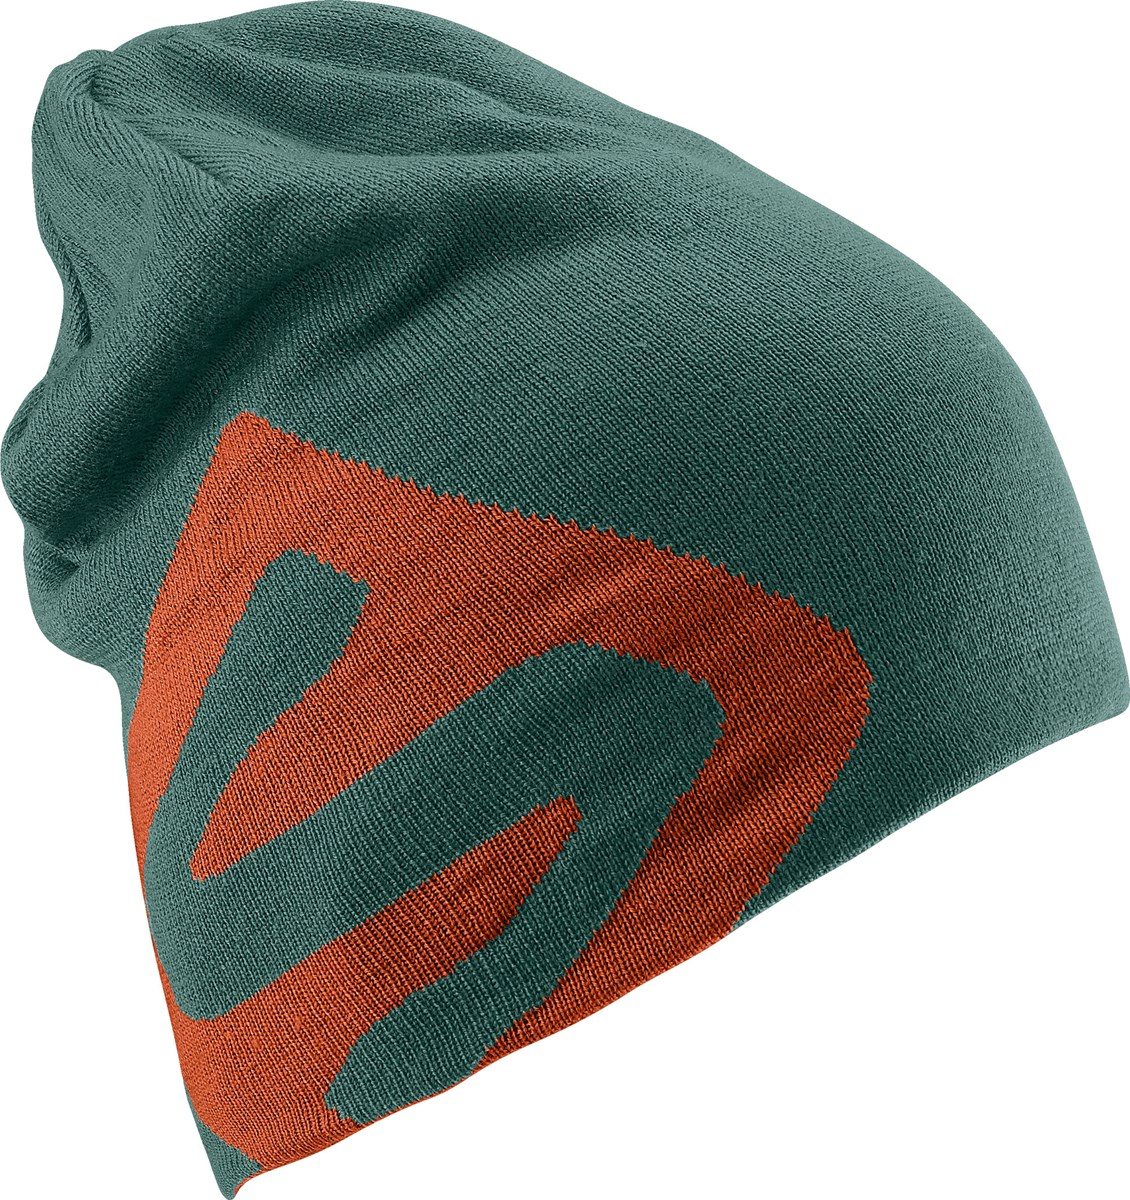 83d0f721d31 Salomon Flat Spin Reversible Beanie Ivy Green Orange. 0 (Be the first to  add a review!)